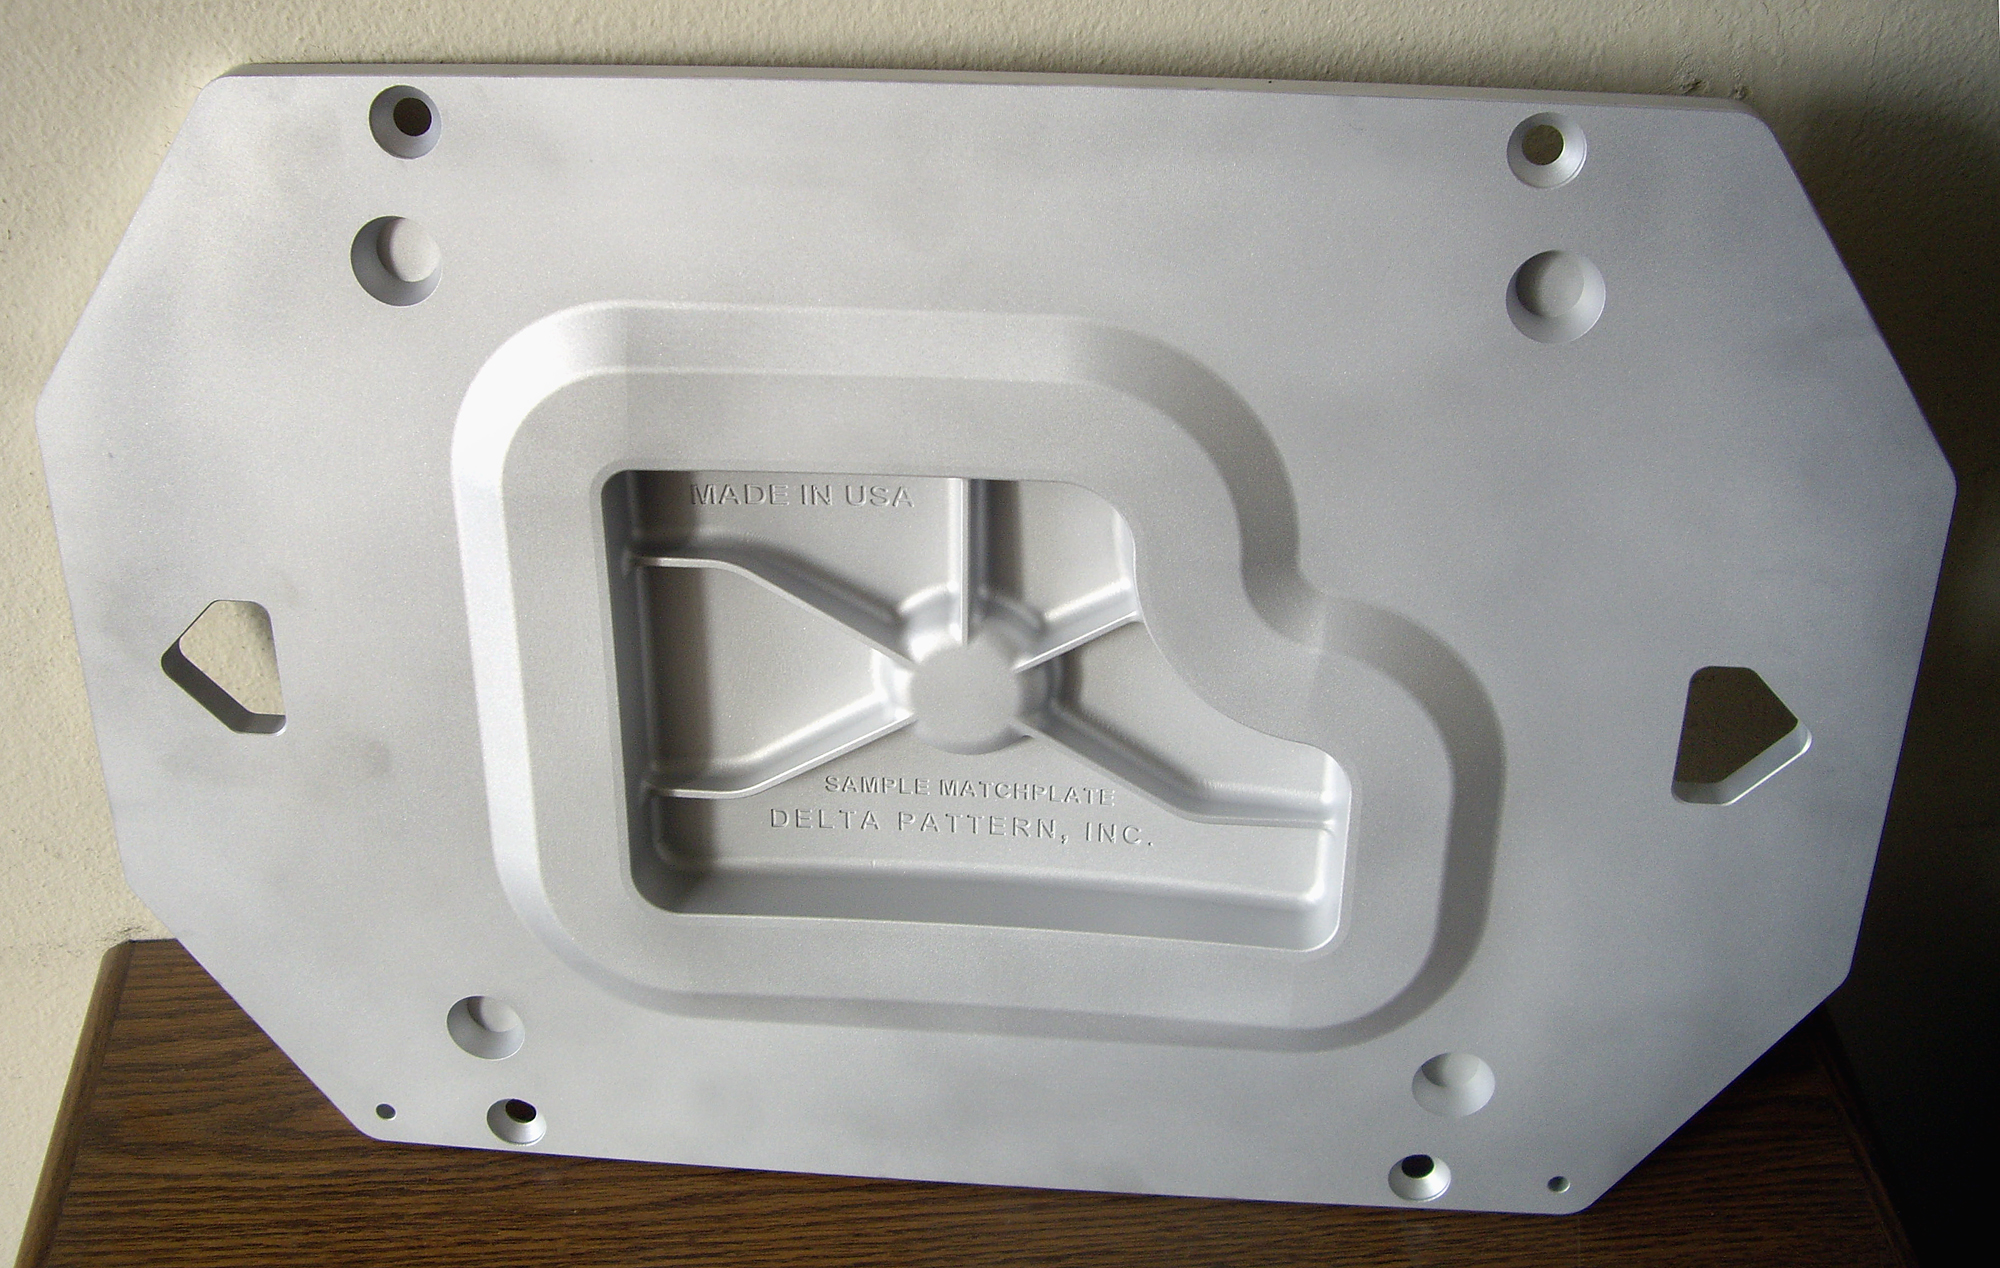 Aluminum Matchplate CNC machined from a billet